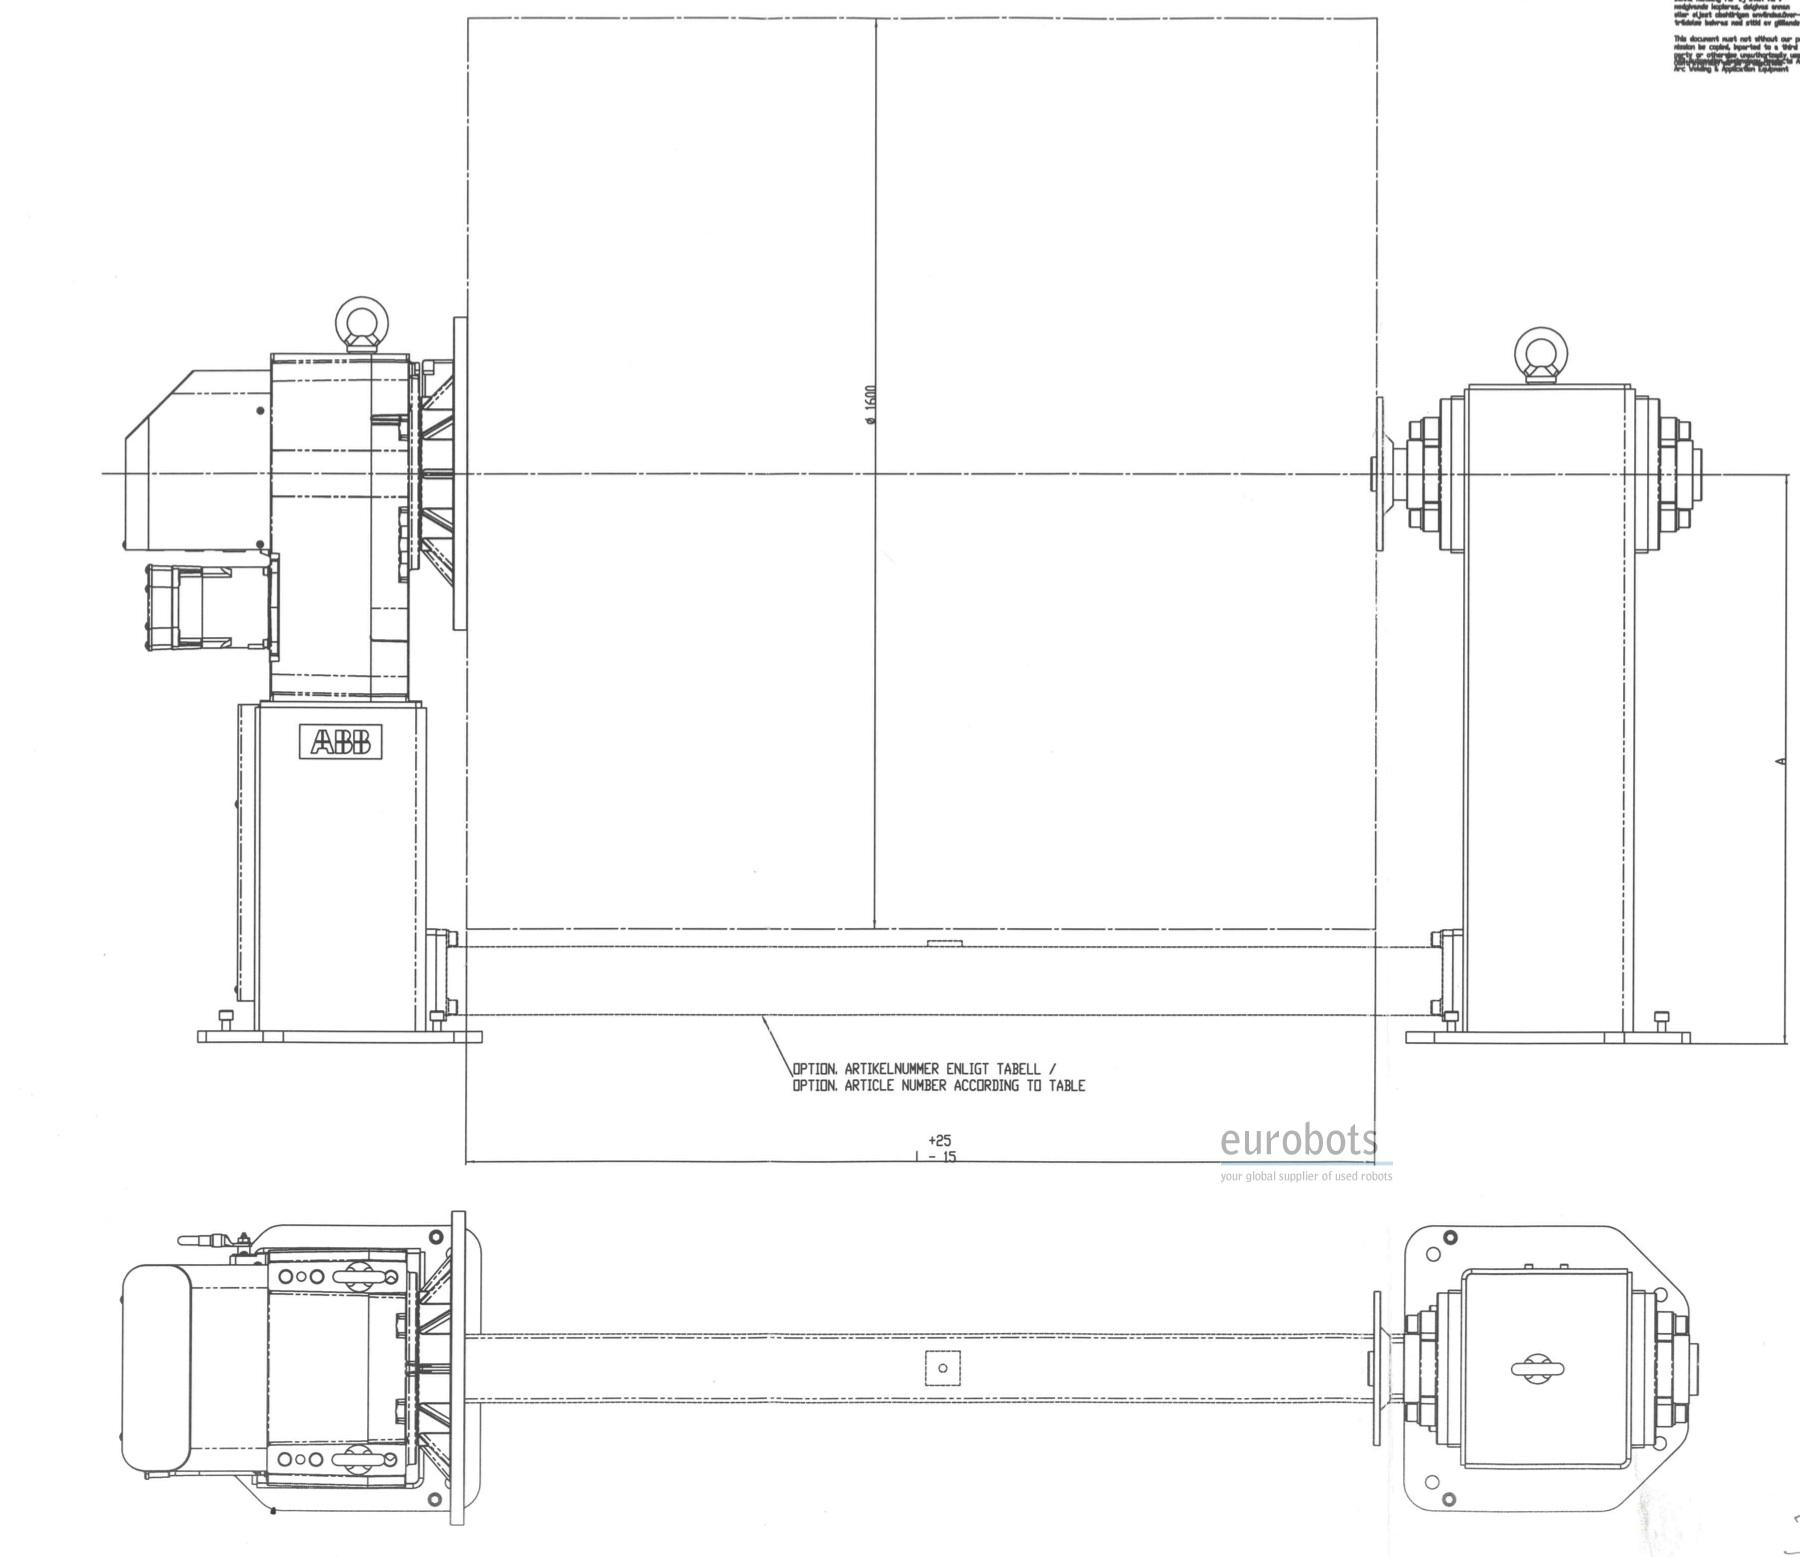 abb ach550 vfd wiring diagram for coleman electric furnace irc5 m2004 29 images